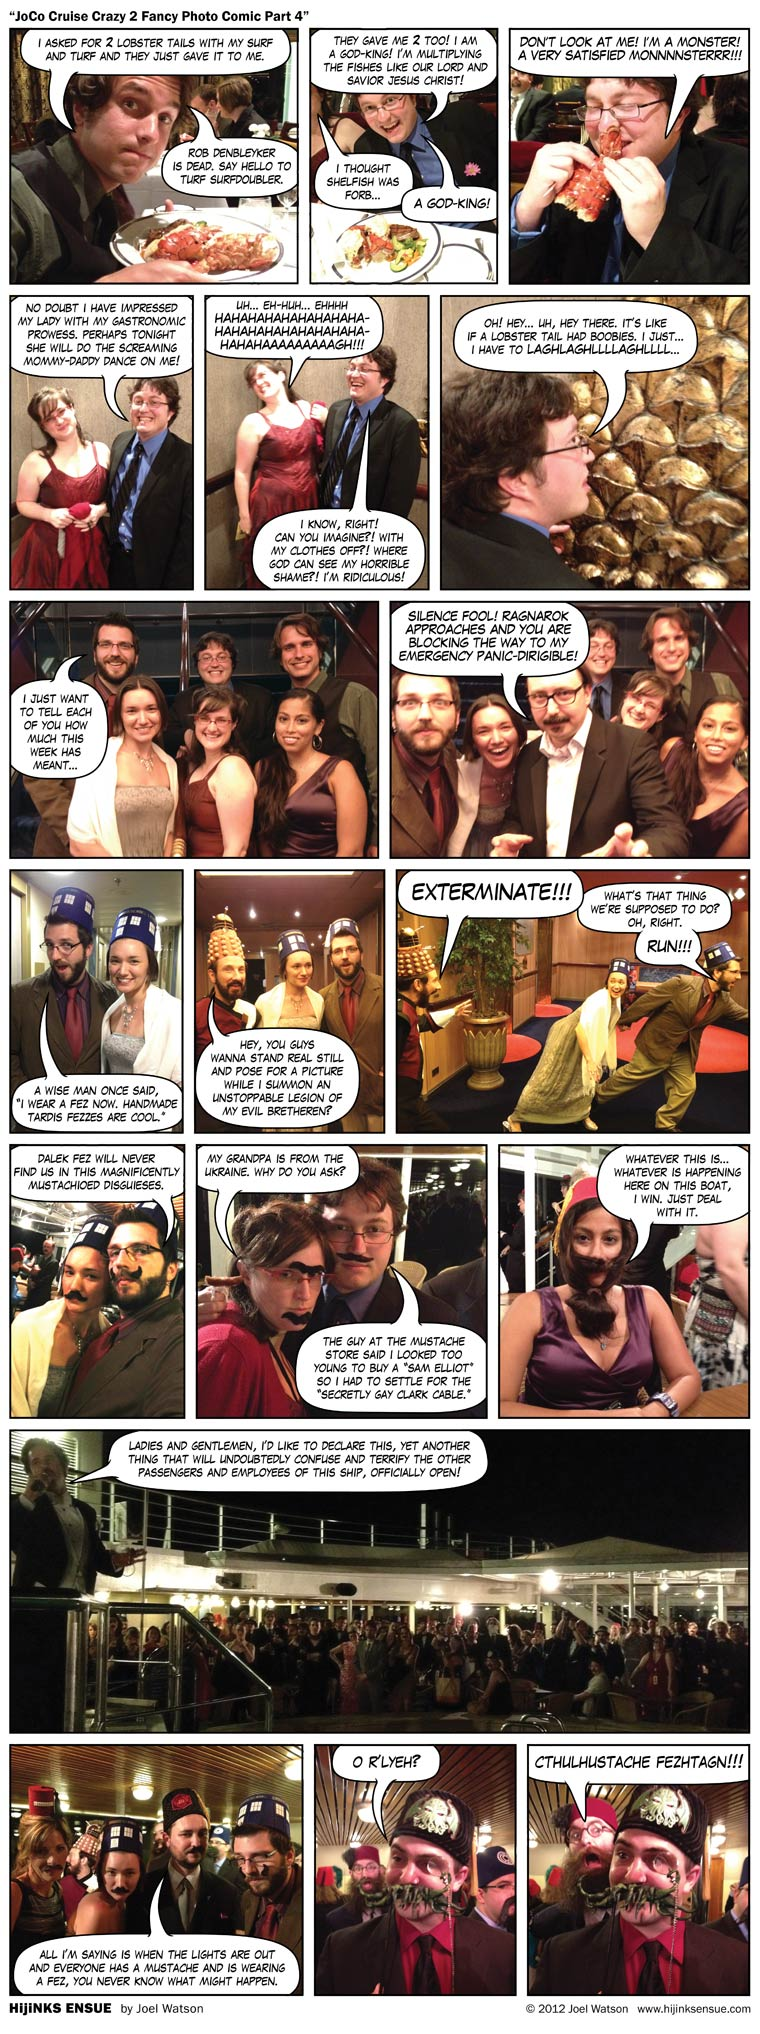 JoCo Cruise Crazy 2 Fancy Photo Comic Part 4